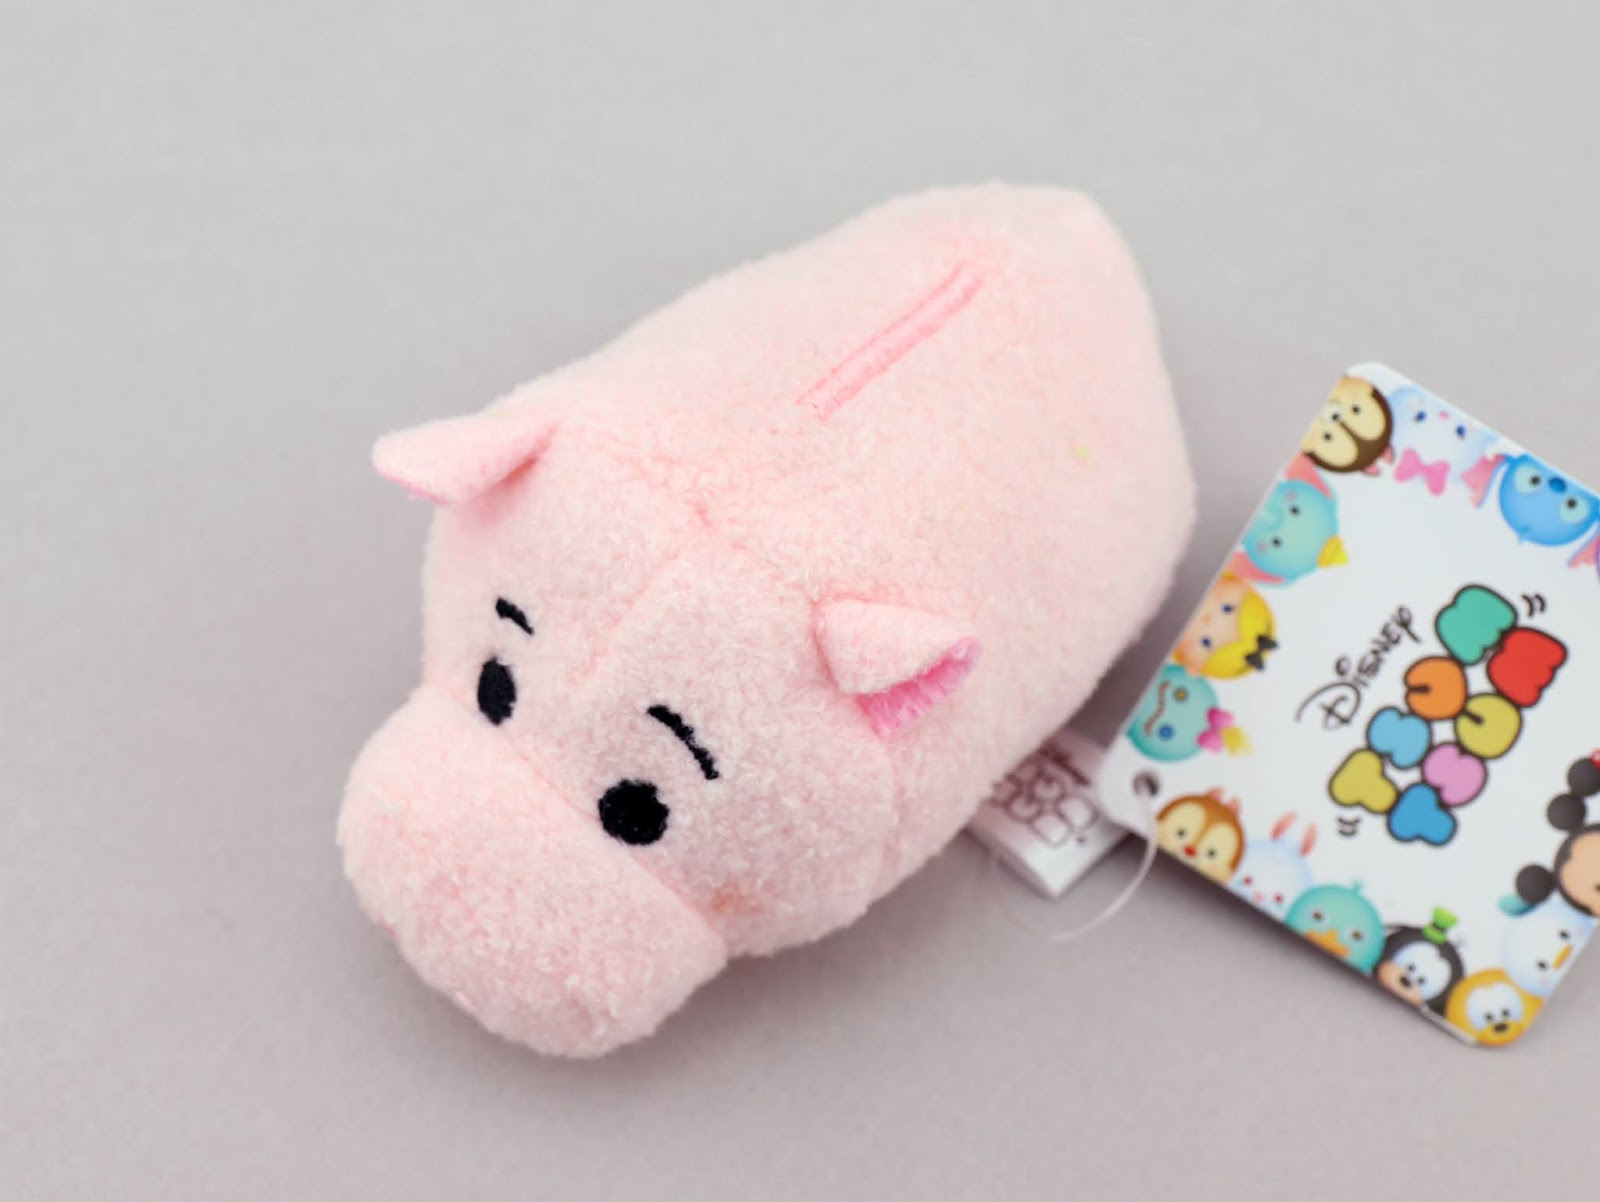 toy story 4 tsum tsums hamm